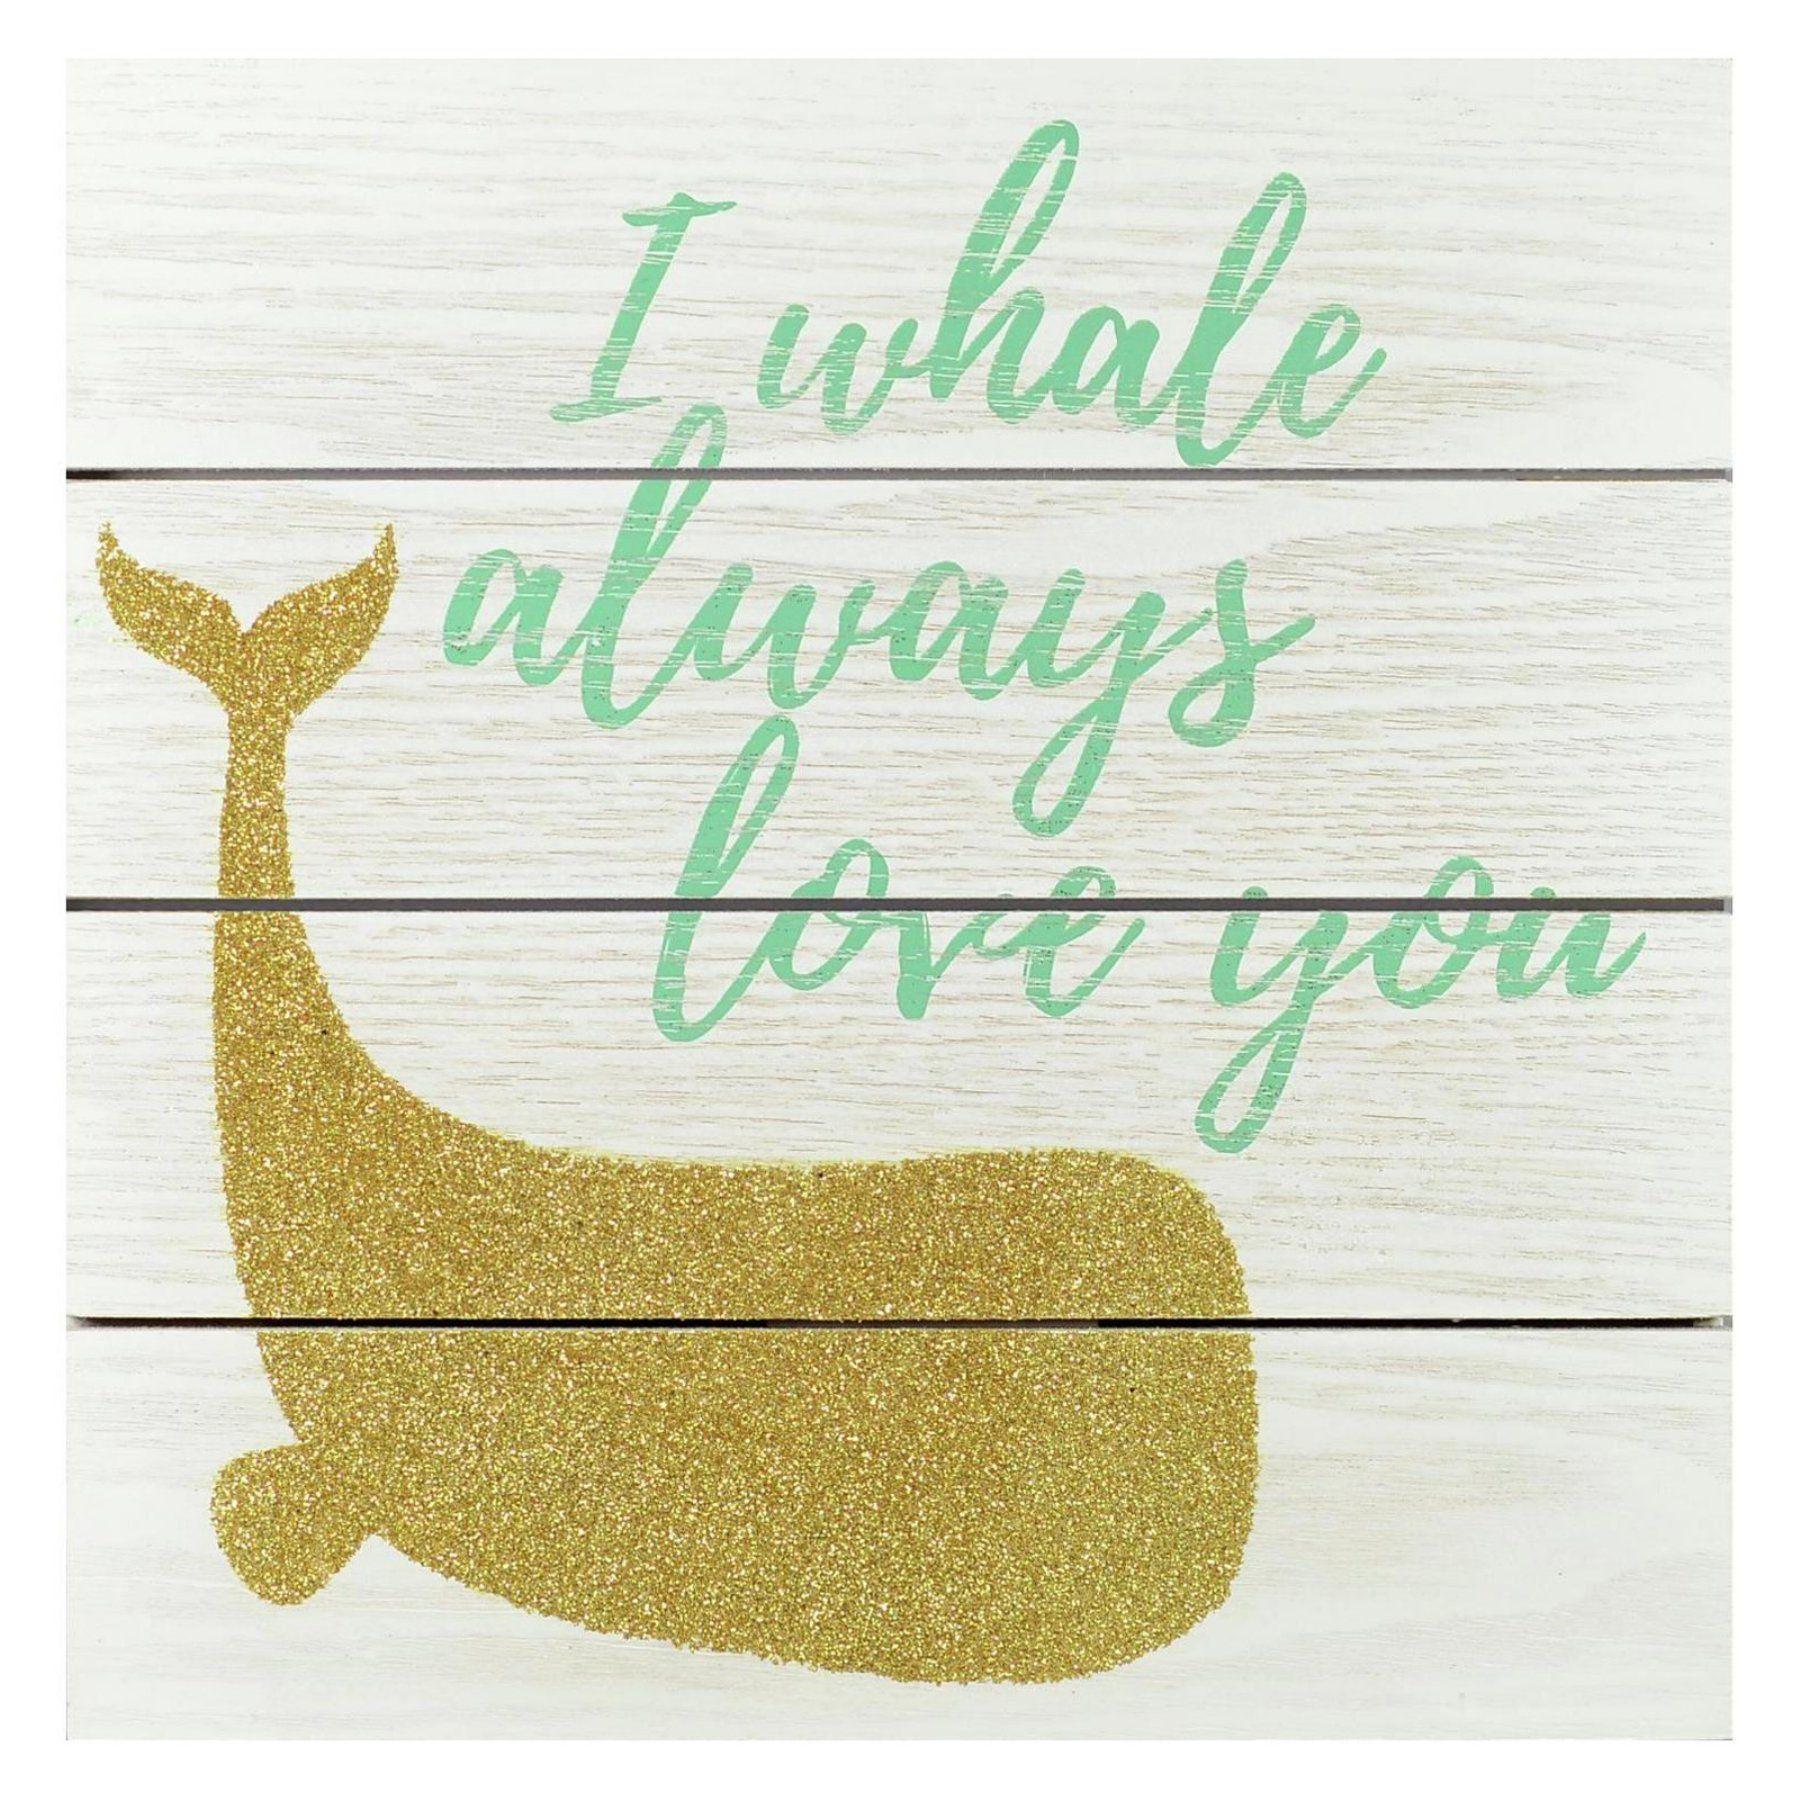 Linden Ave I Whale Always Love You Wood Plank Art with Glitter Wall ...